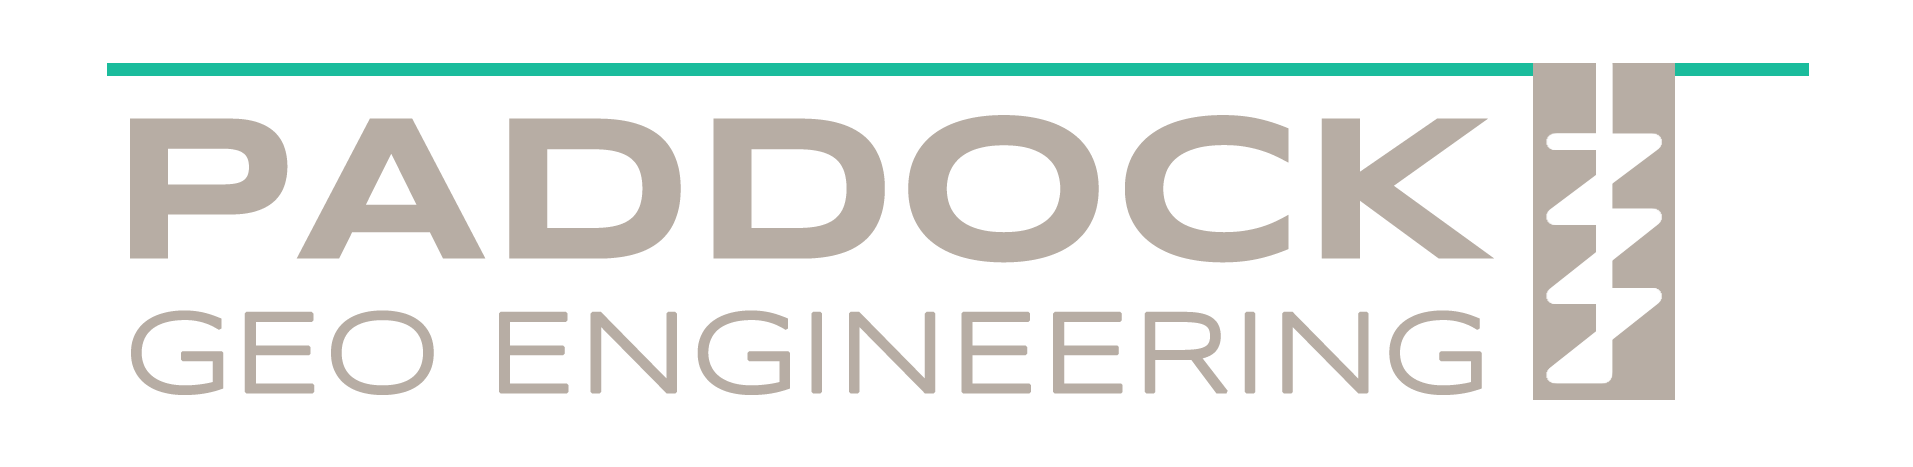 Paddock Geo Engineering logo